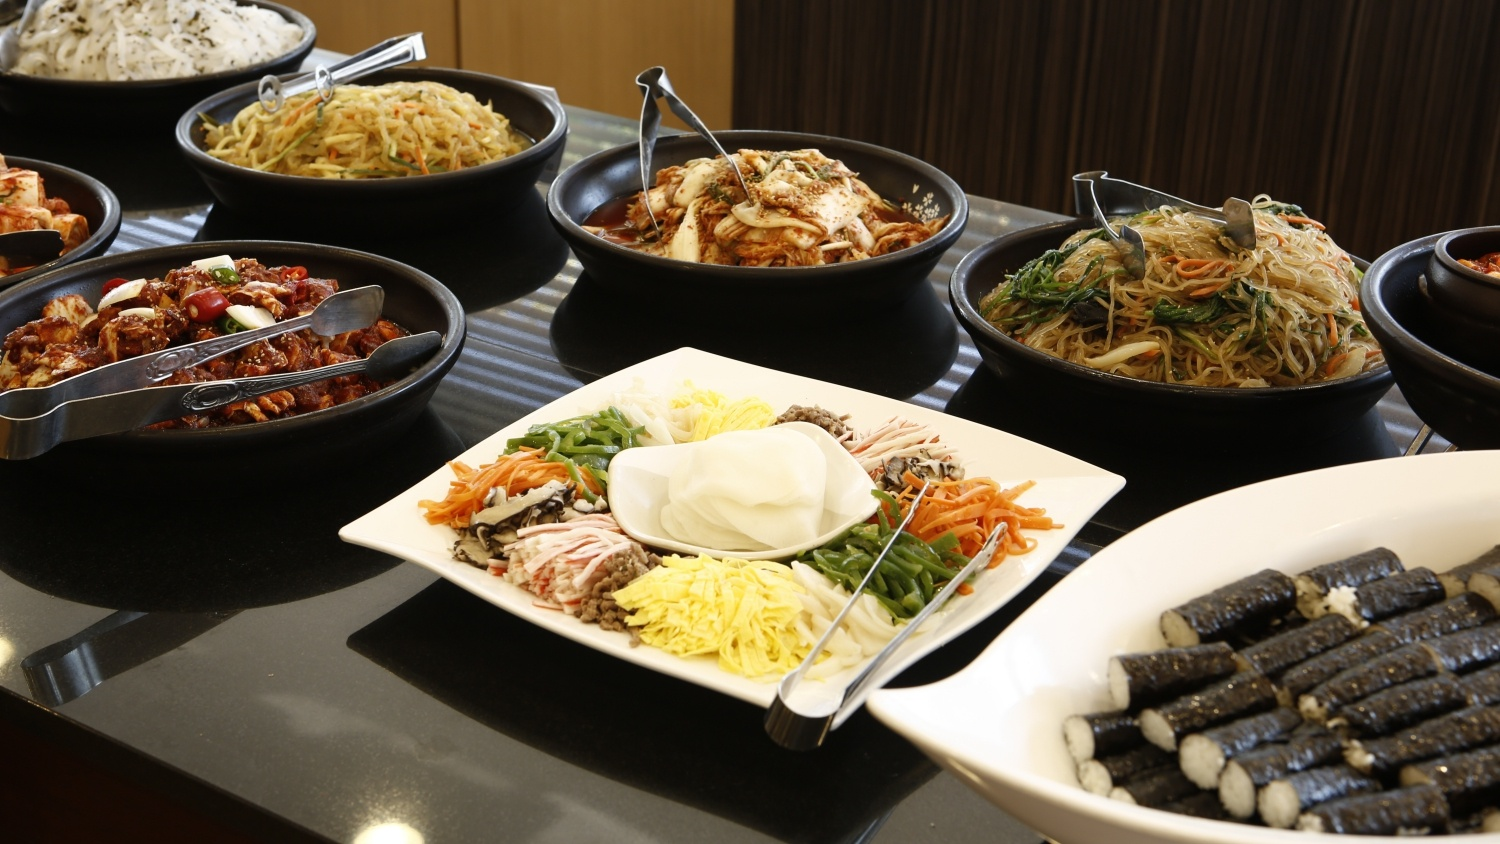 5 Rules For Buffet Food Safety